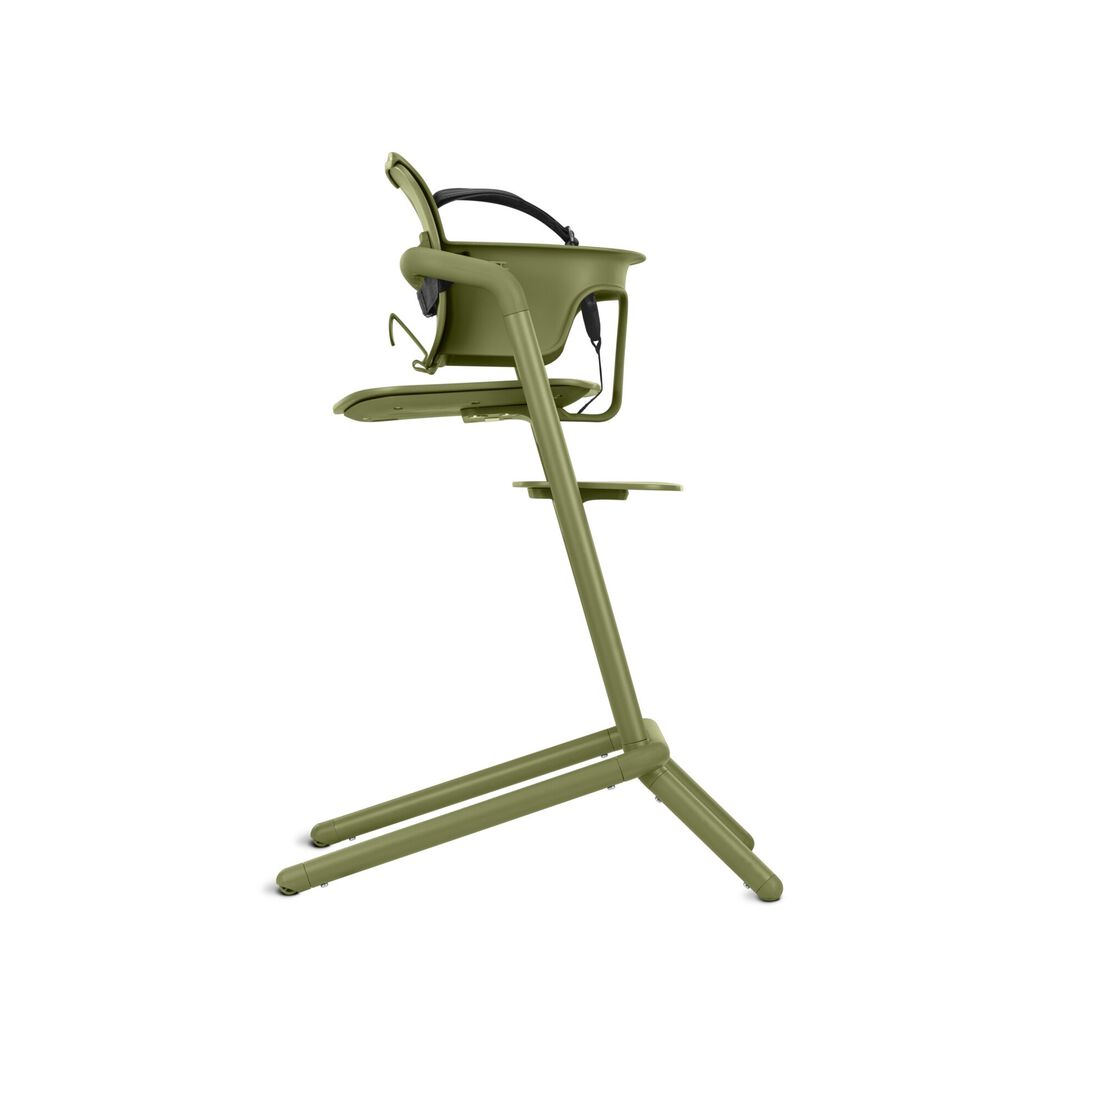 CYBEX Lemo Baby Set 2 - Outback Green in Outback Green large image number 2